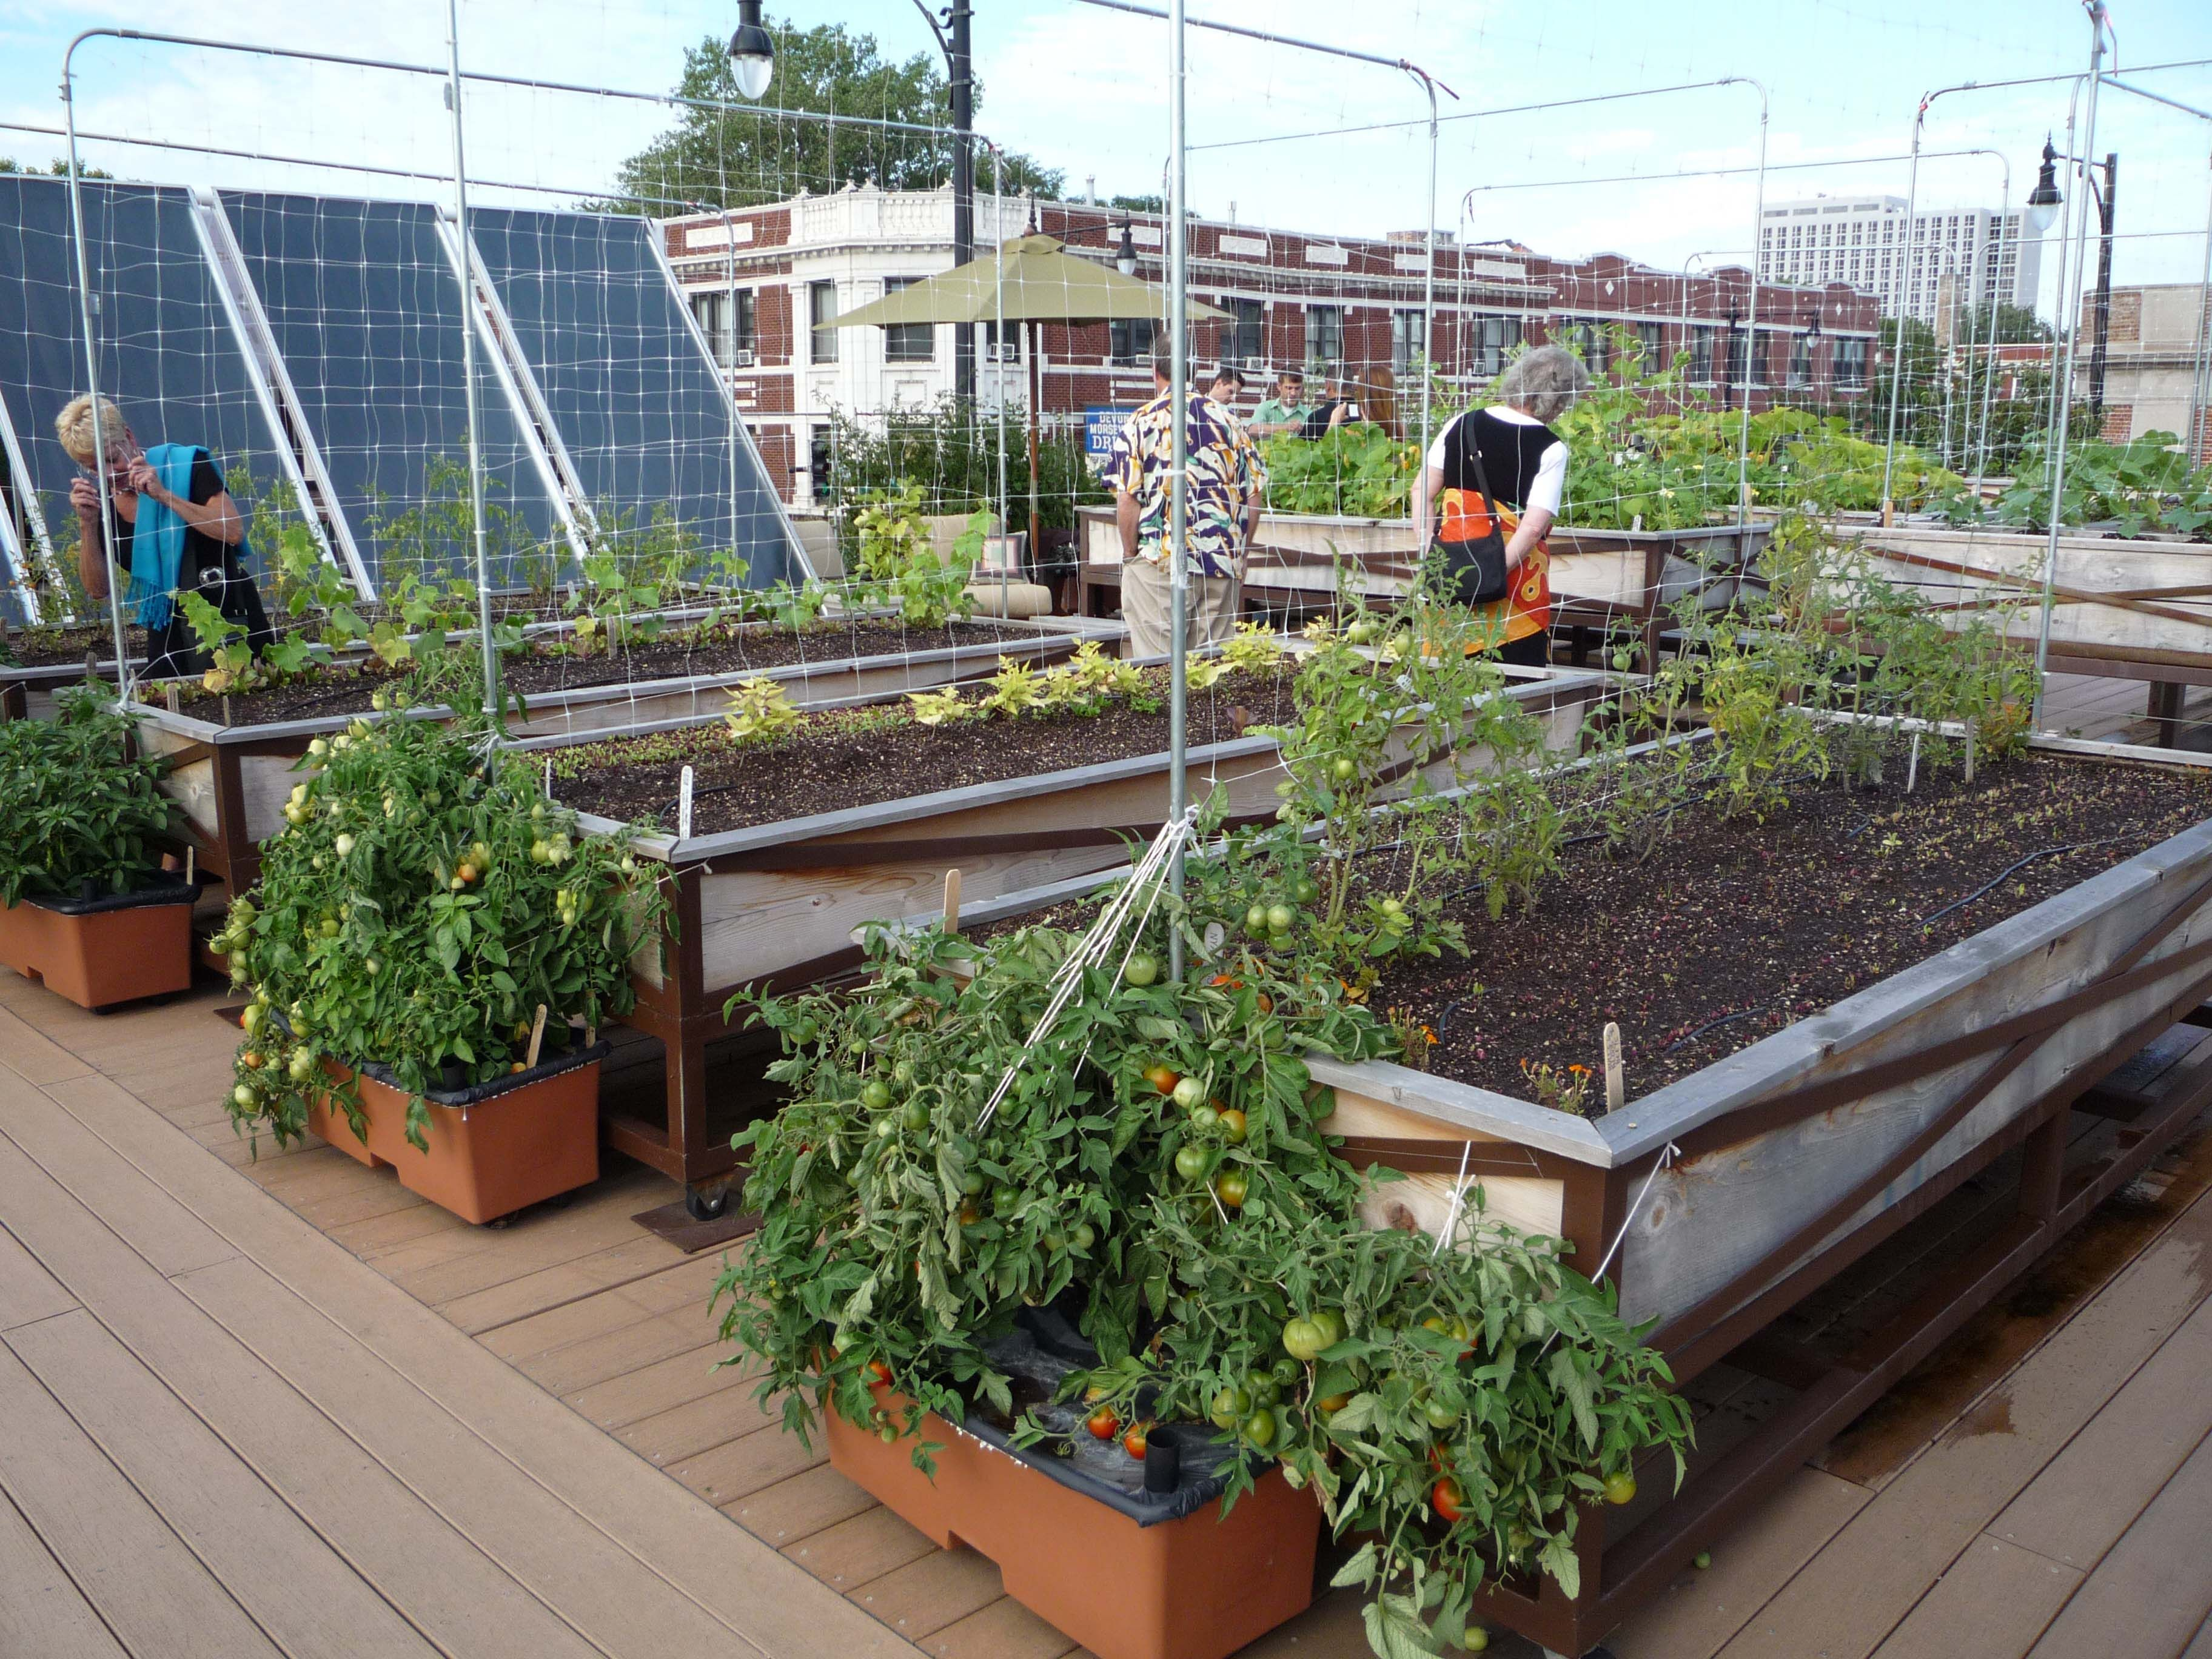 If Xzibit Pimped My Roof Vegetable garden design, Small